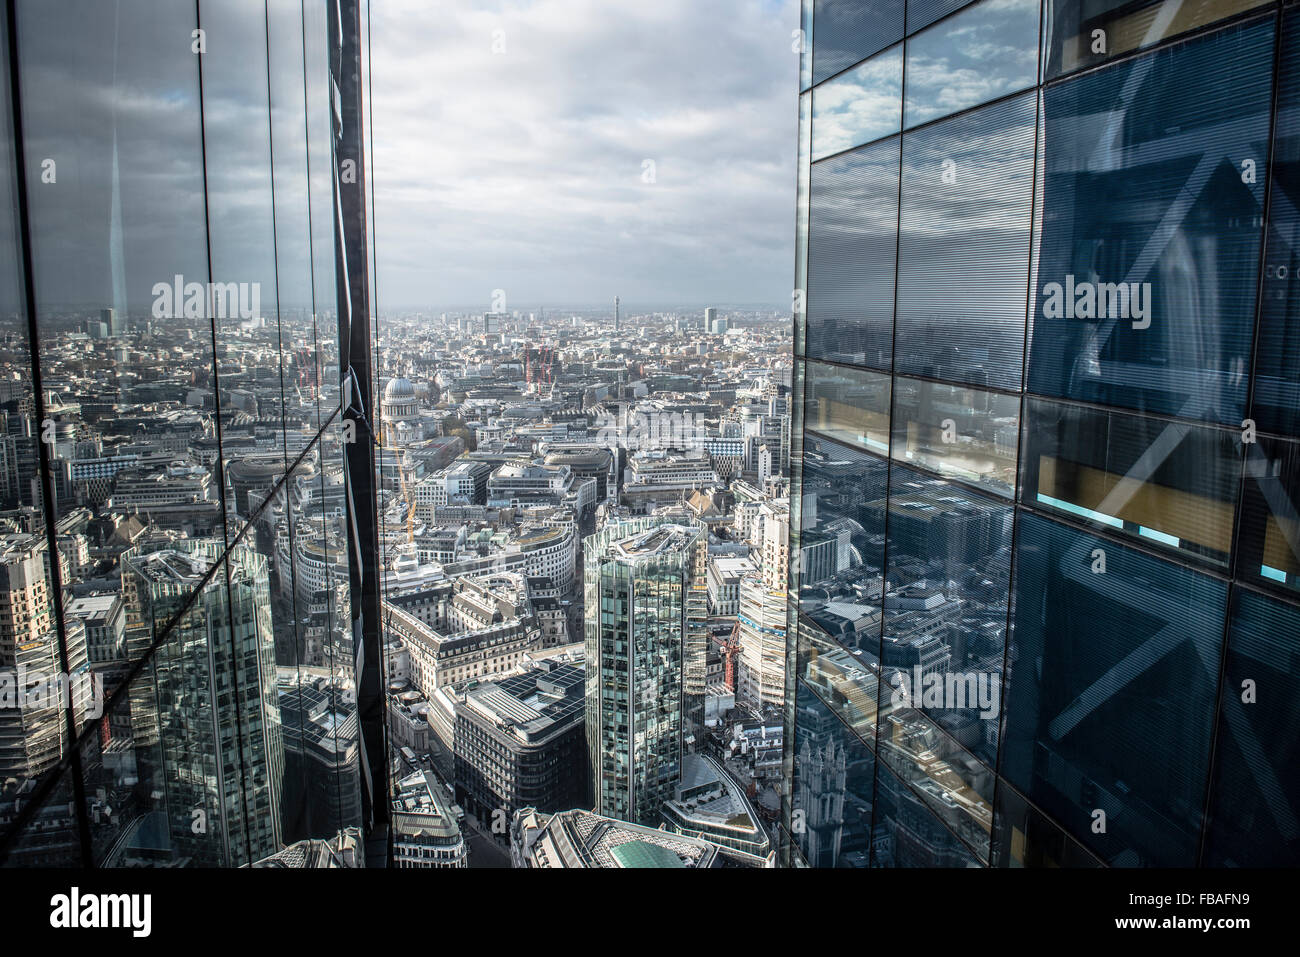 View from the Leadenhall building, the Cheesegrater - Stock Image